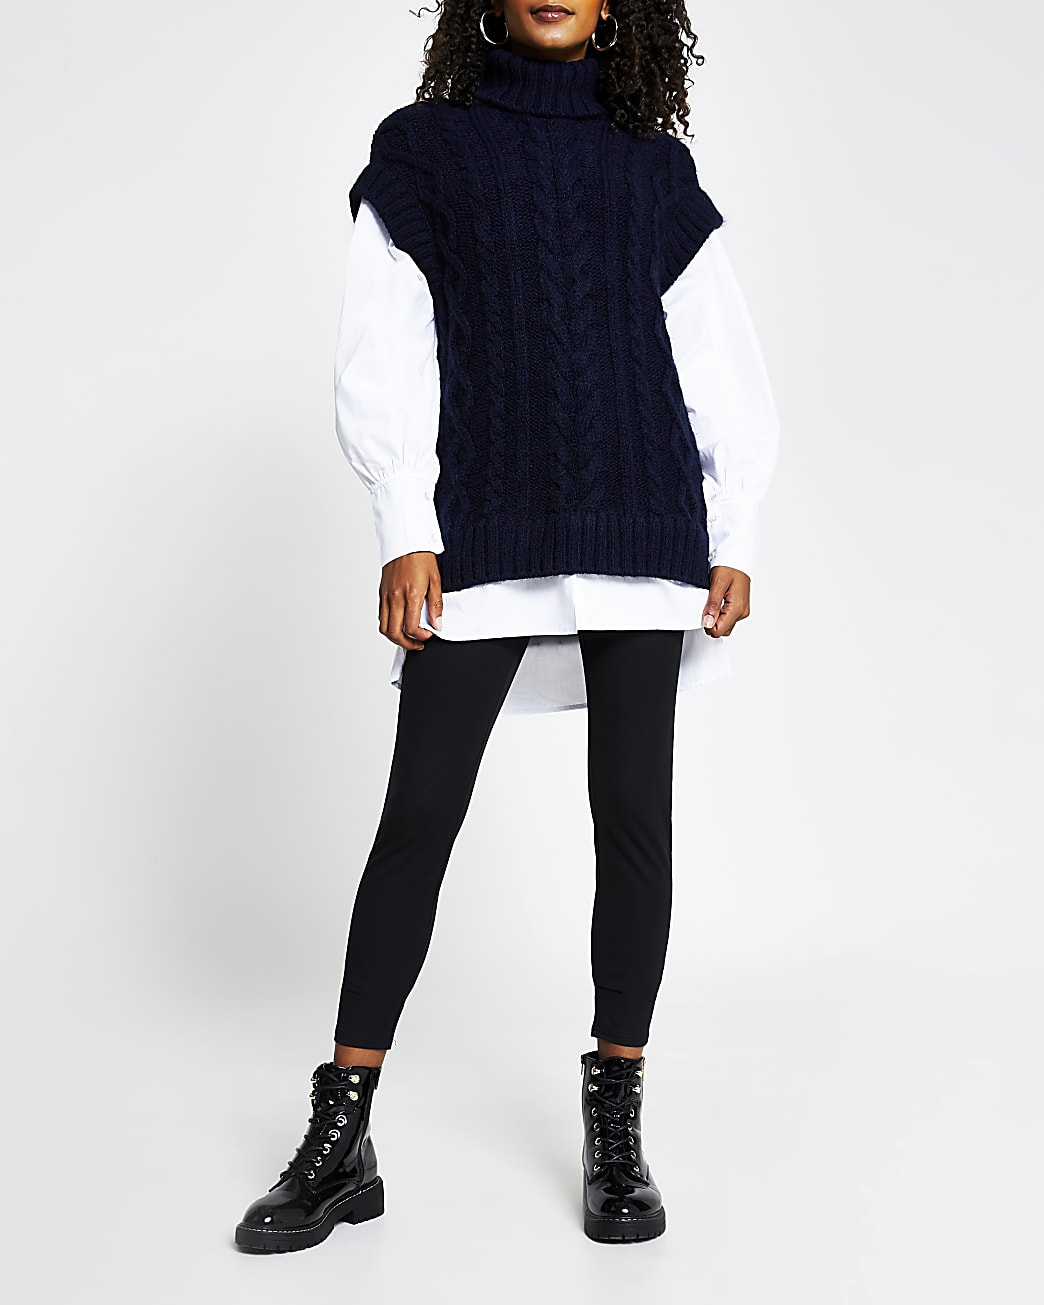 Navy oversized cable knit tunic top